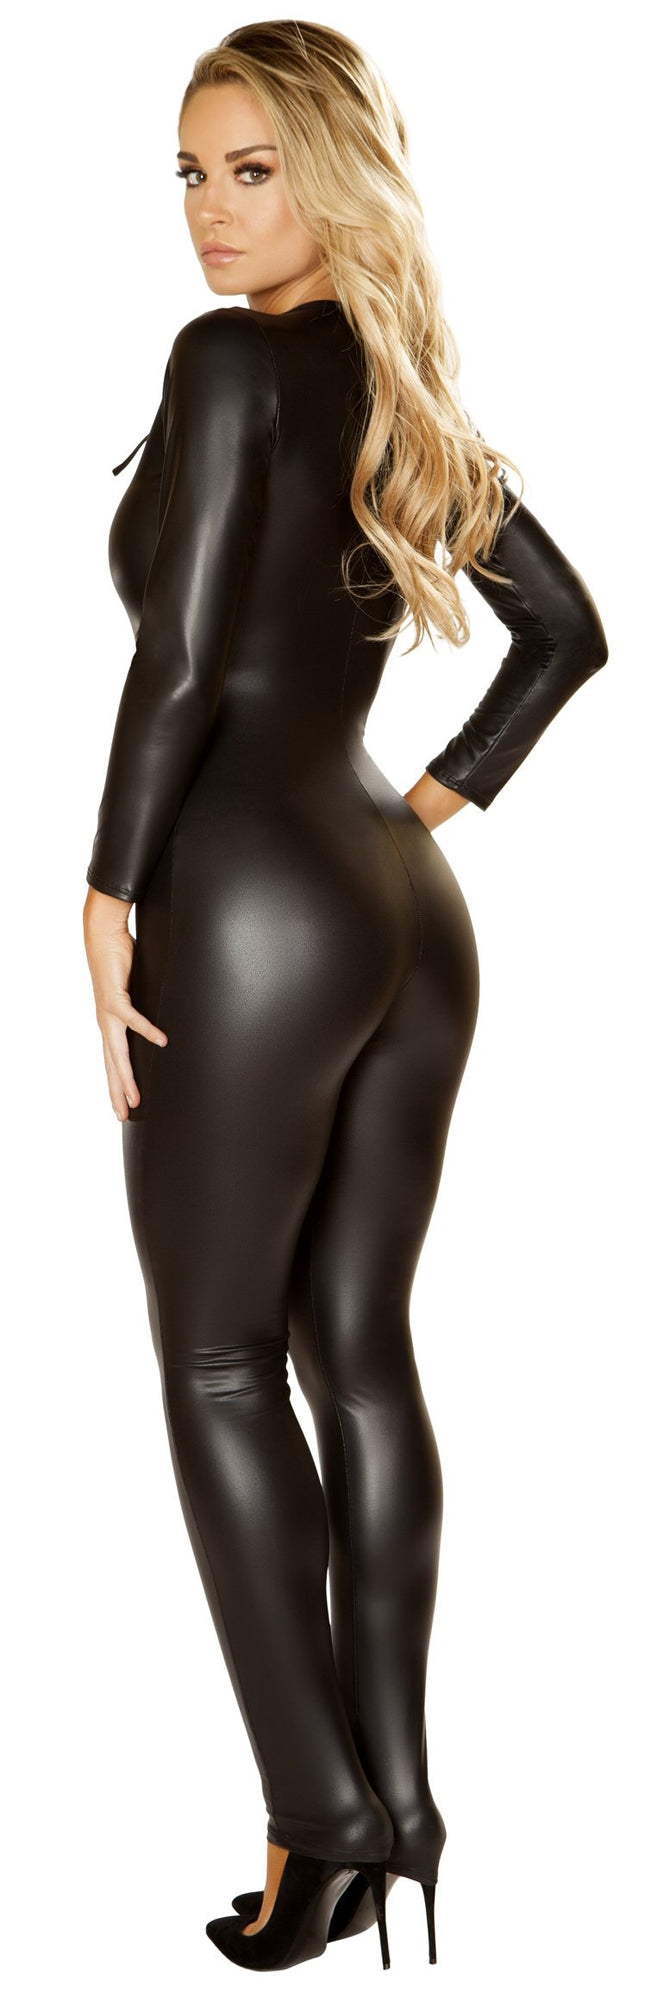 RM-4862 Black catsuit by Roma Costume back